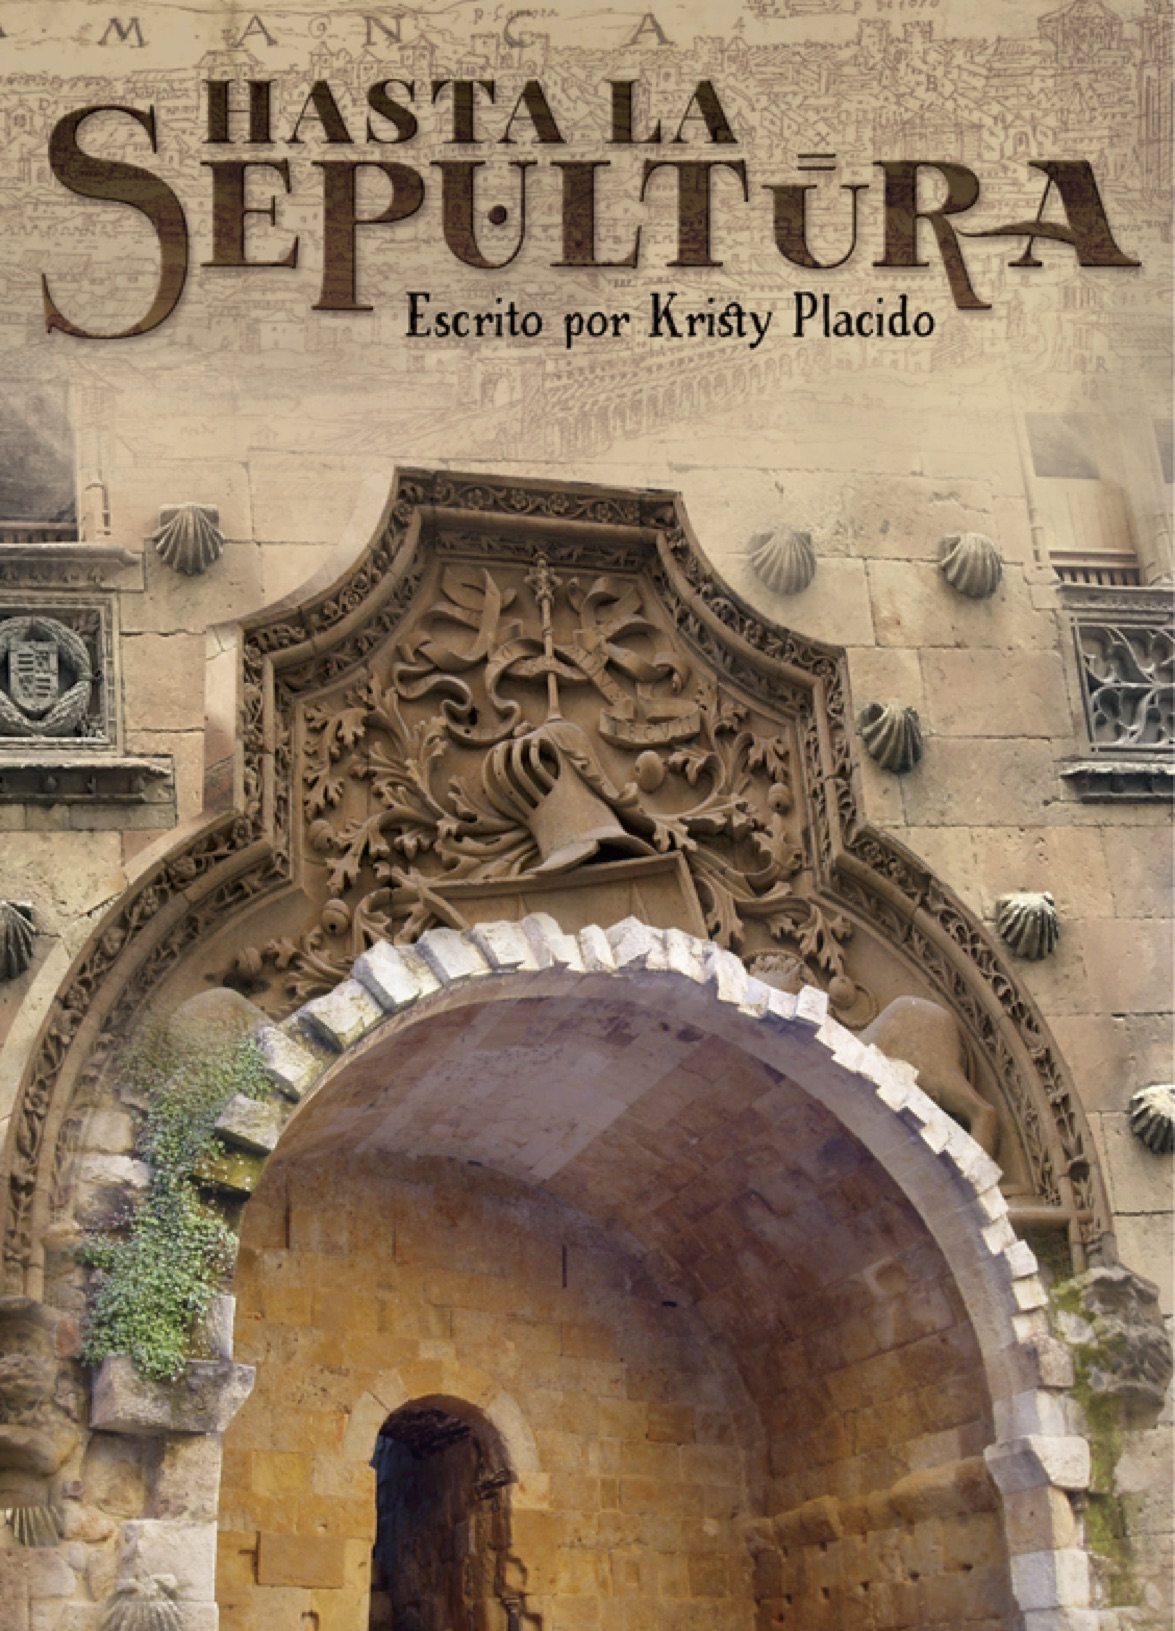 Hasta la Sepultura – Novel